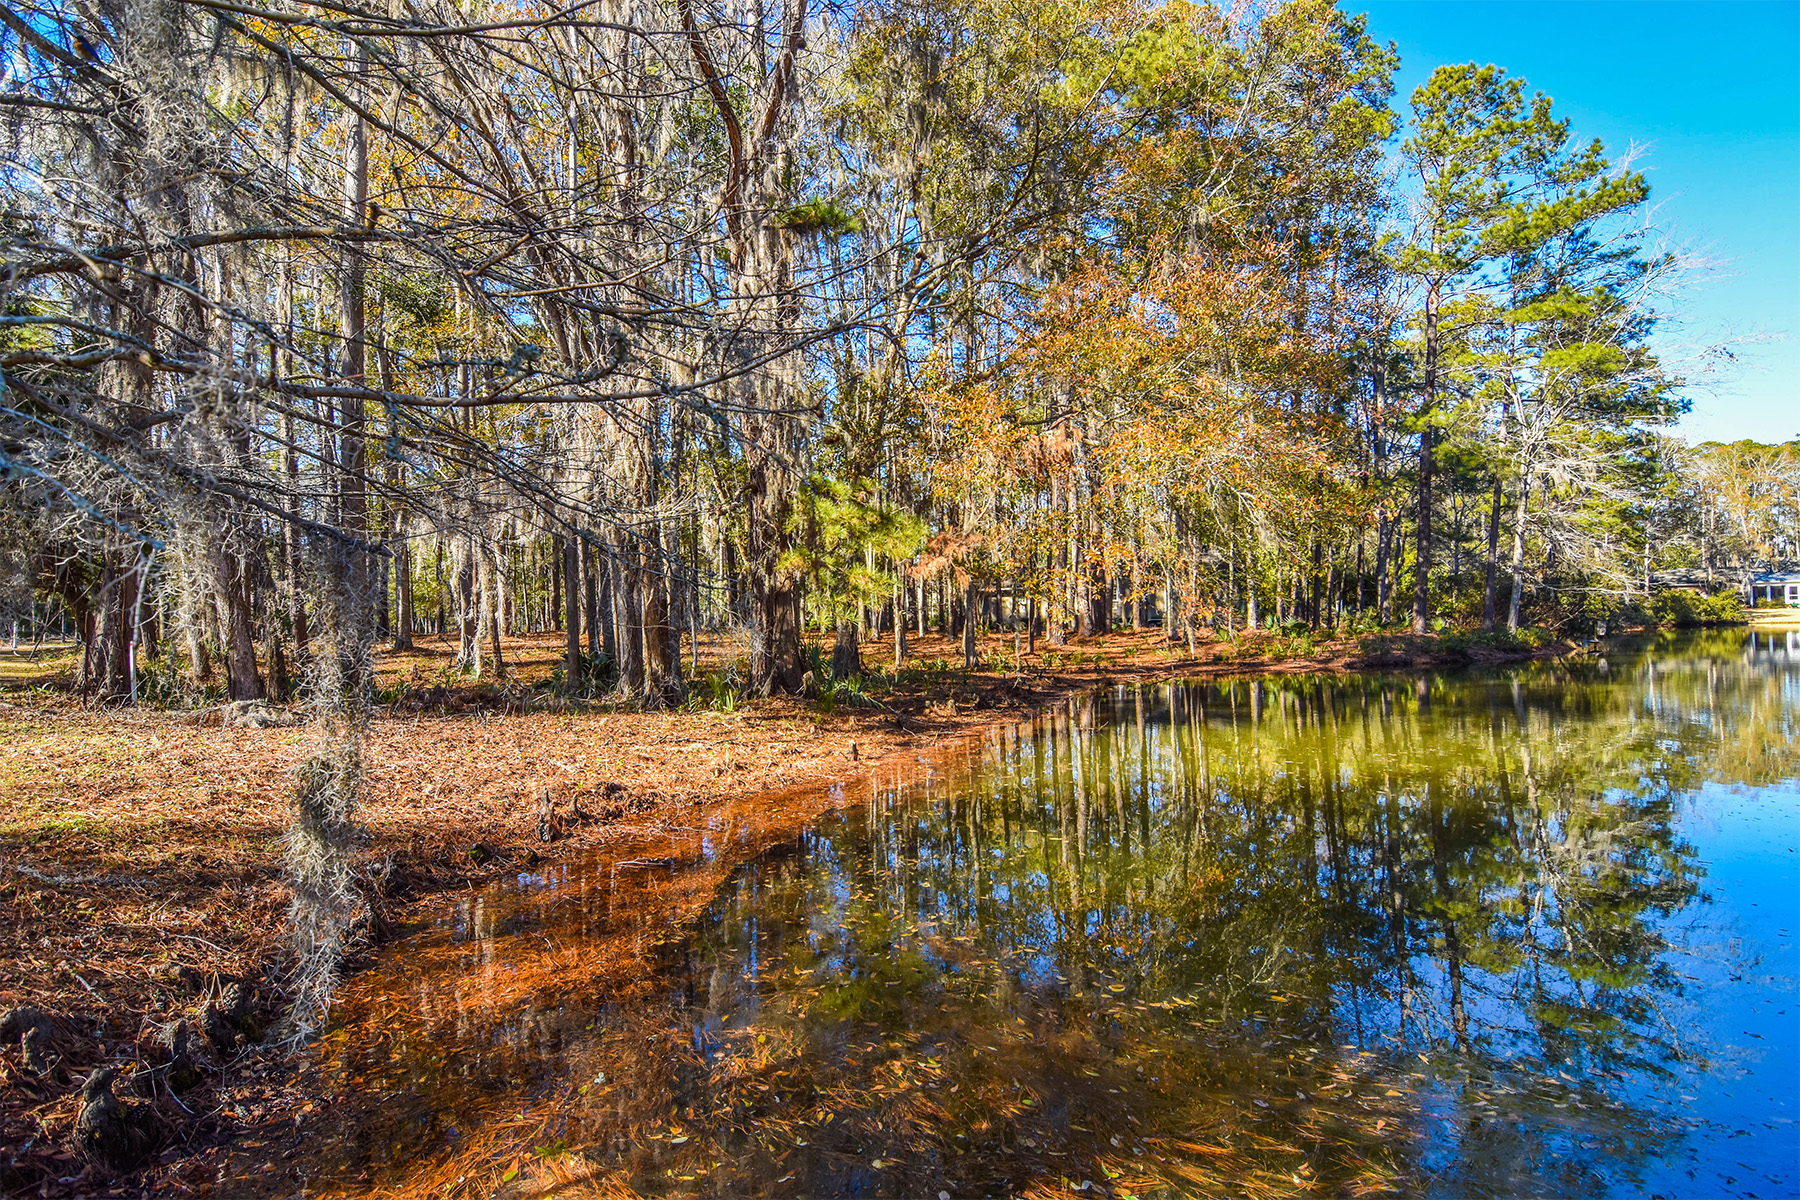 Land for Sale at Lot 1 Makepeace Road, Pawleys Island, SC 29585 Lot 1 Makepeace Road Pawleys Island, South Carolina 29585 United States